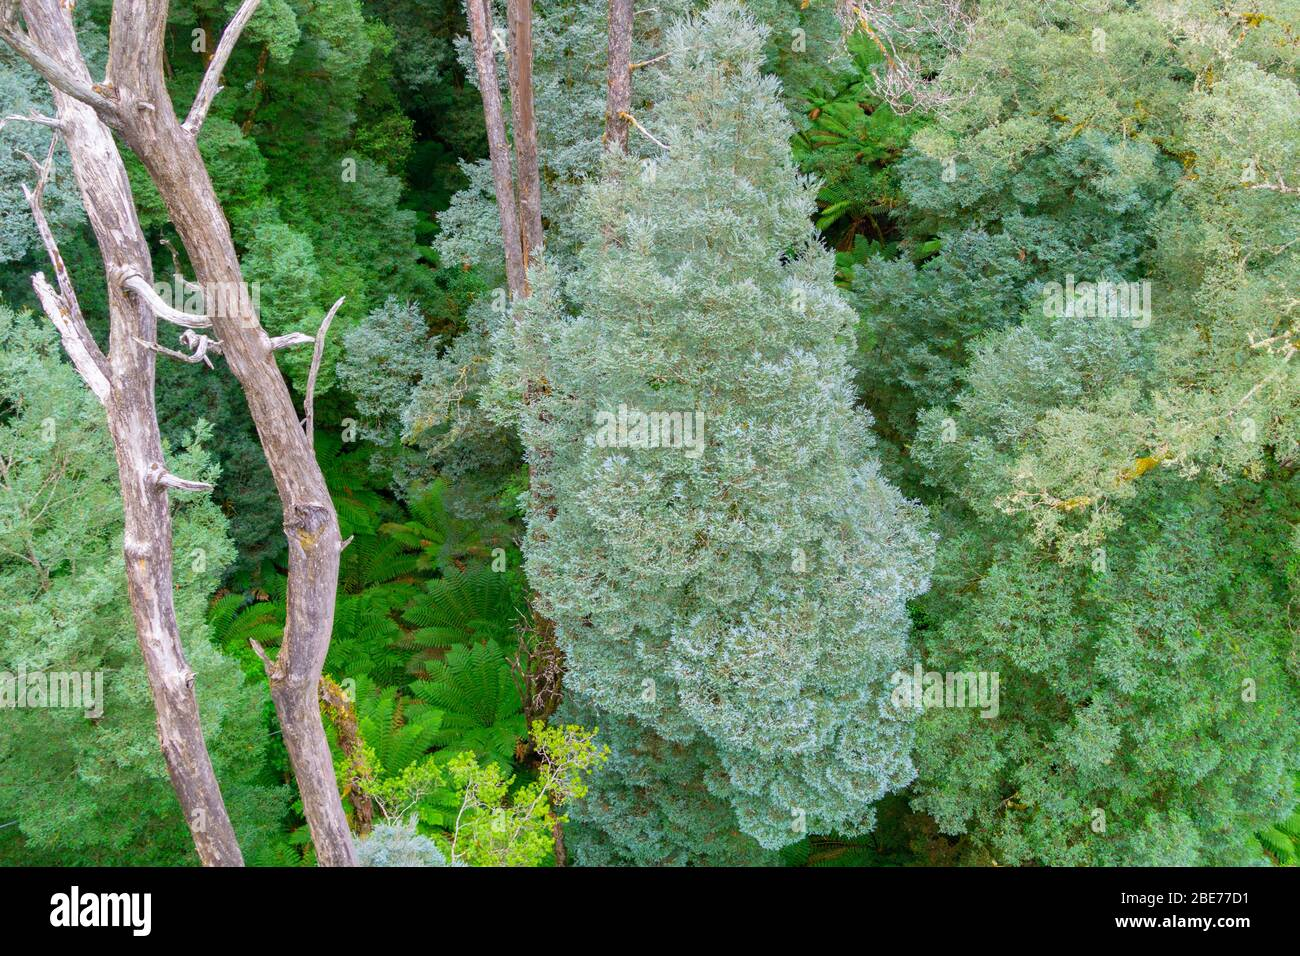 Typical Australian rainforest  with tall eucalyptus and other trees forming canopy over forest below. Stock Photo